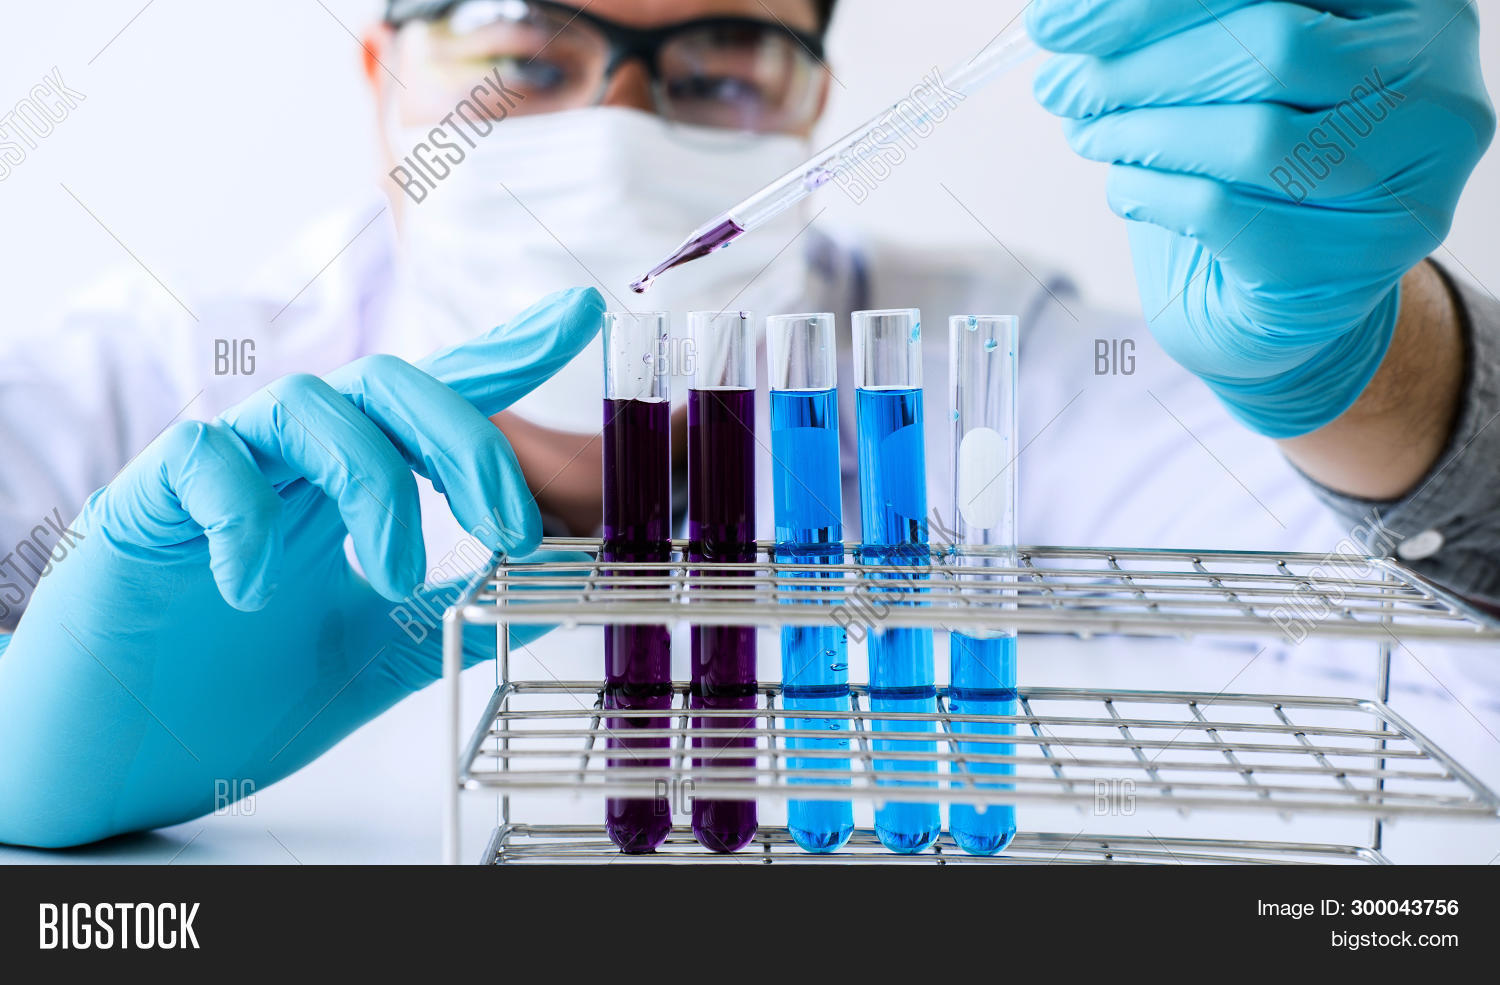 Biochemistry Laboratory Research, Scientist Or Medical In Lab Coat Holding Test Tube With Reagent Wi